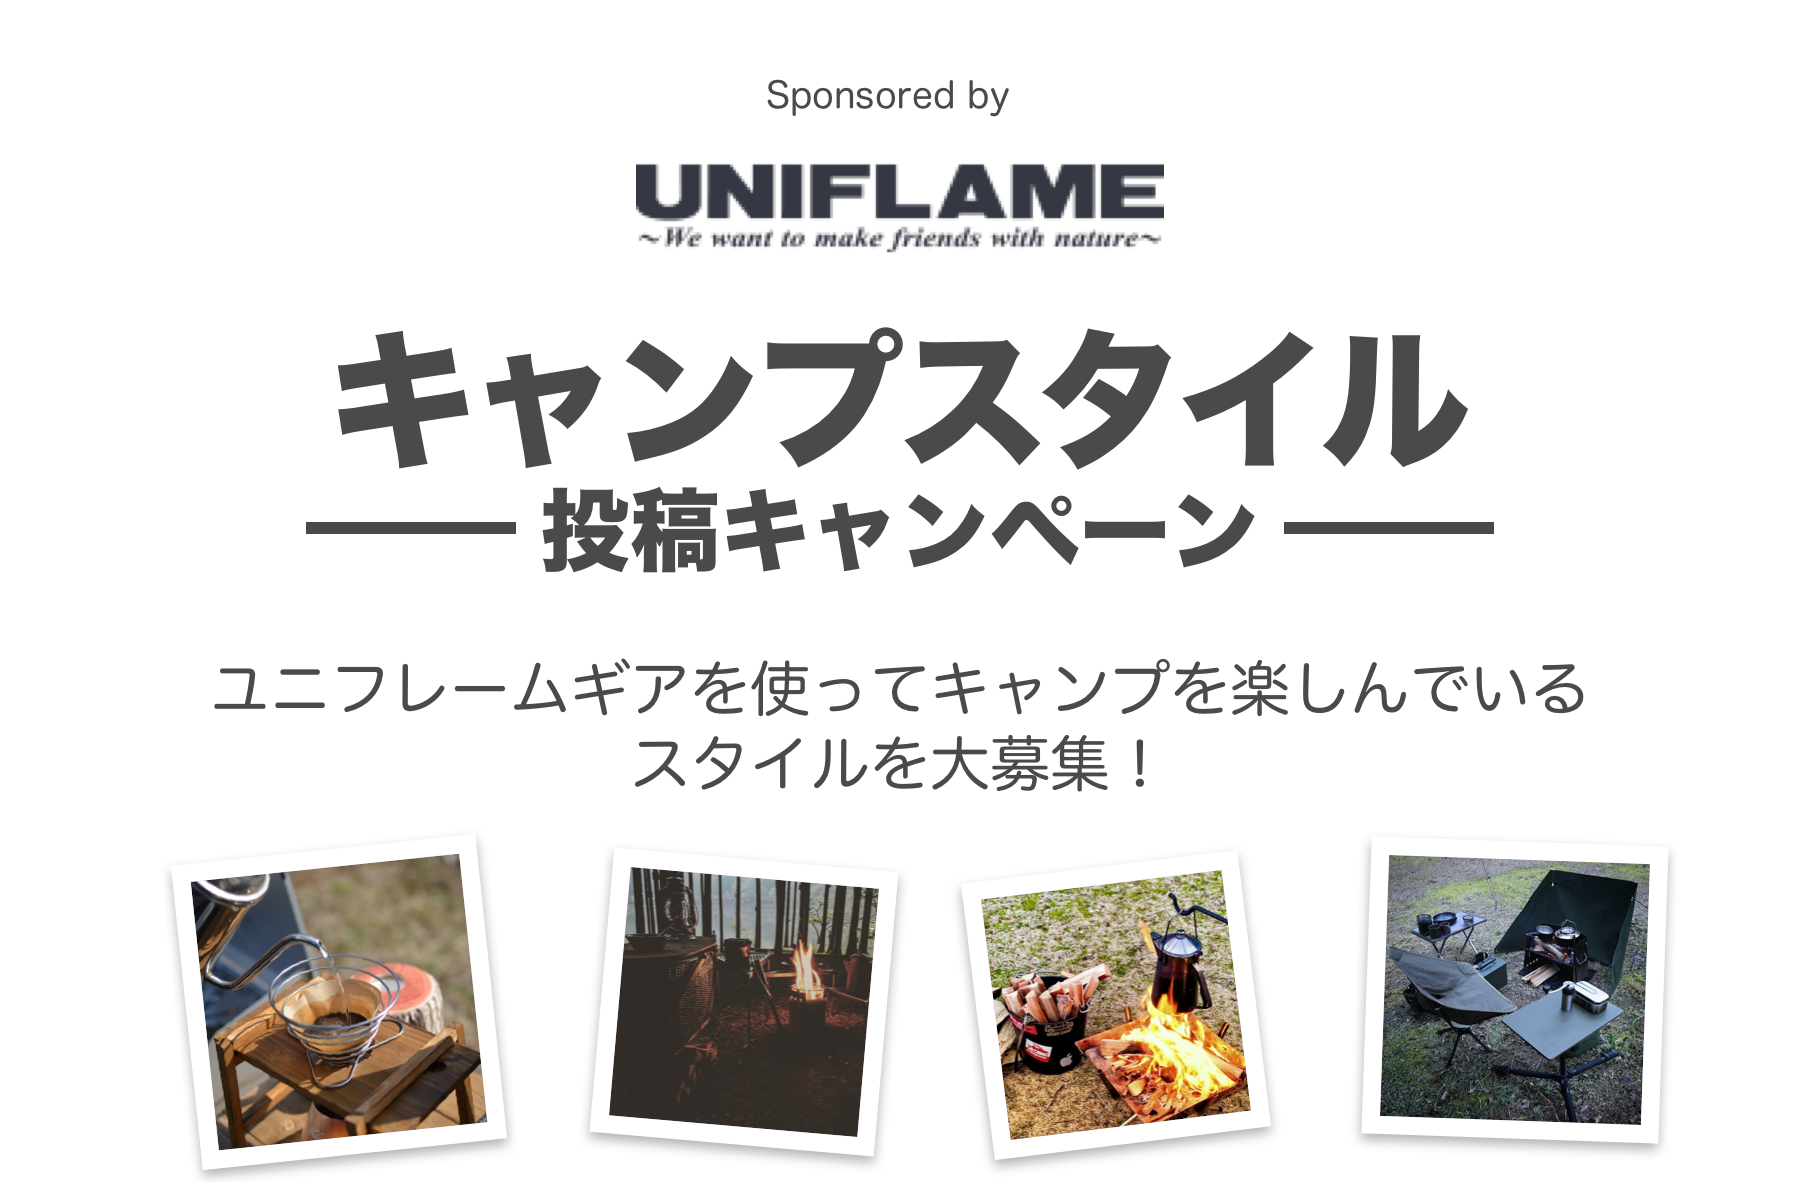 UNIFLAMEで楽しむキャンプ